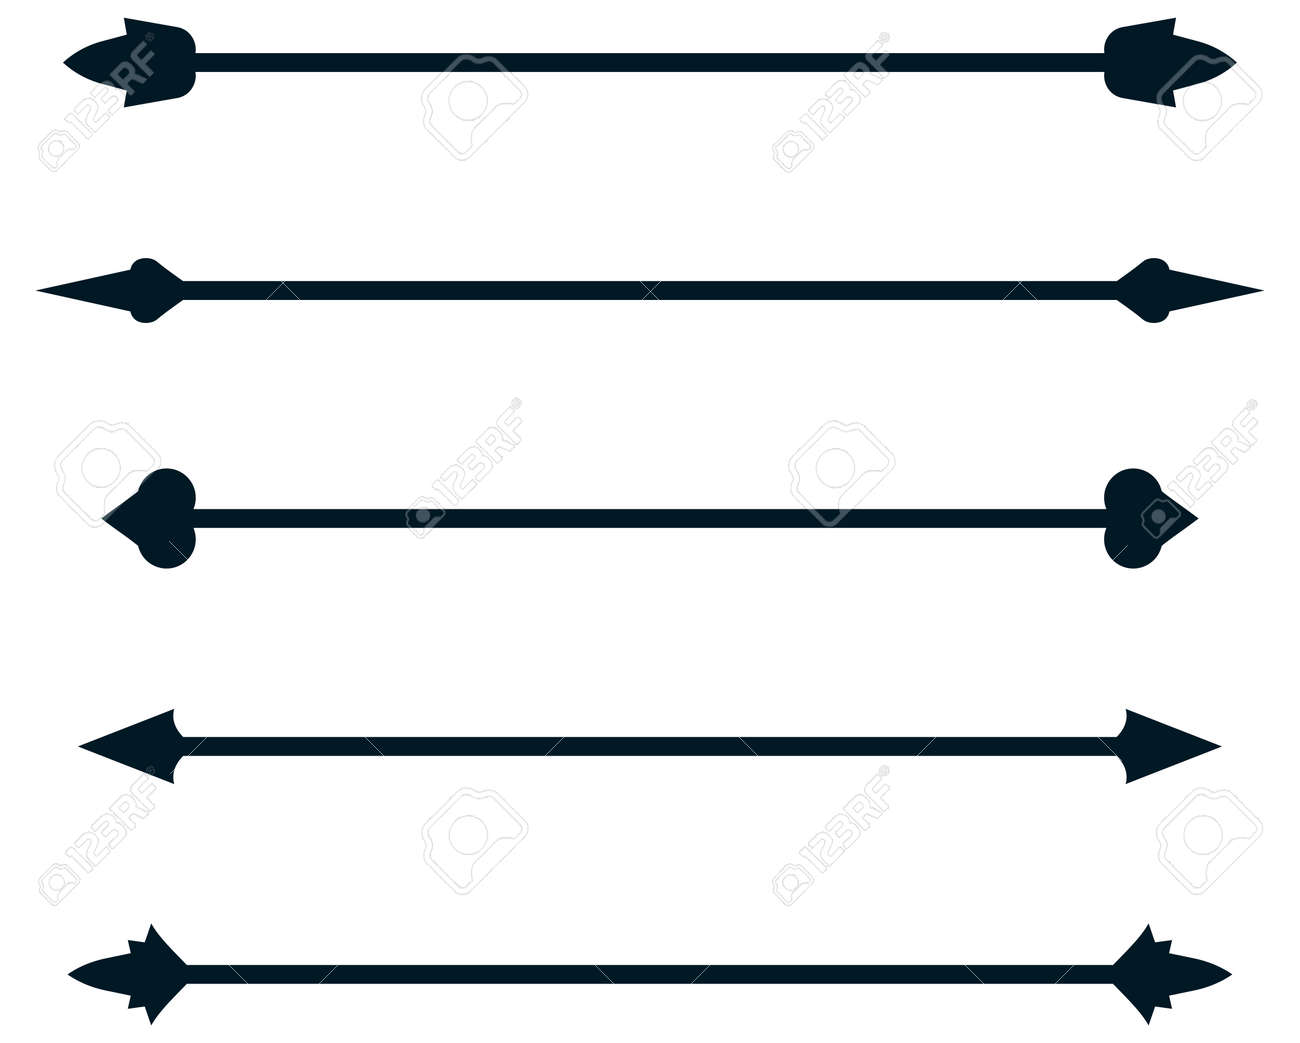 Dividing rule lines, Vector dividers rulelines illustration isolated - 43675639